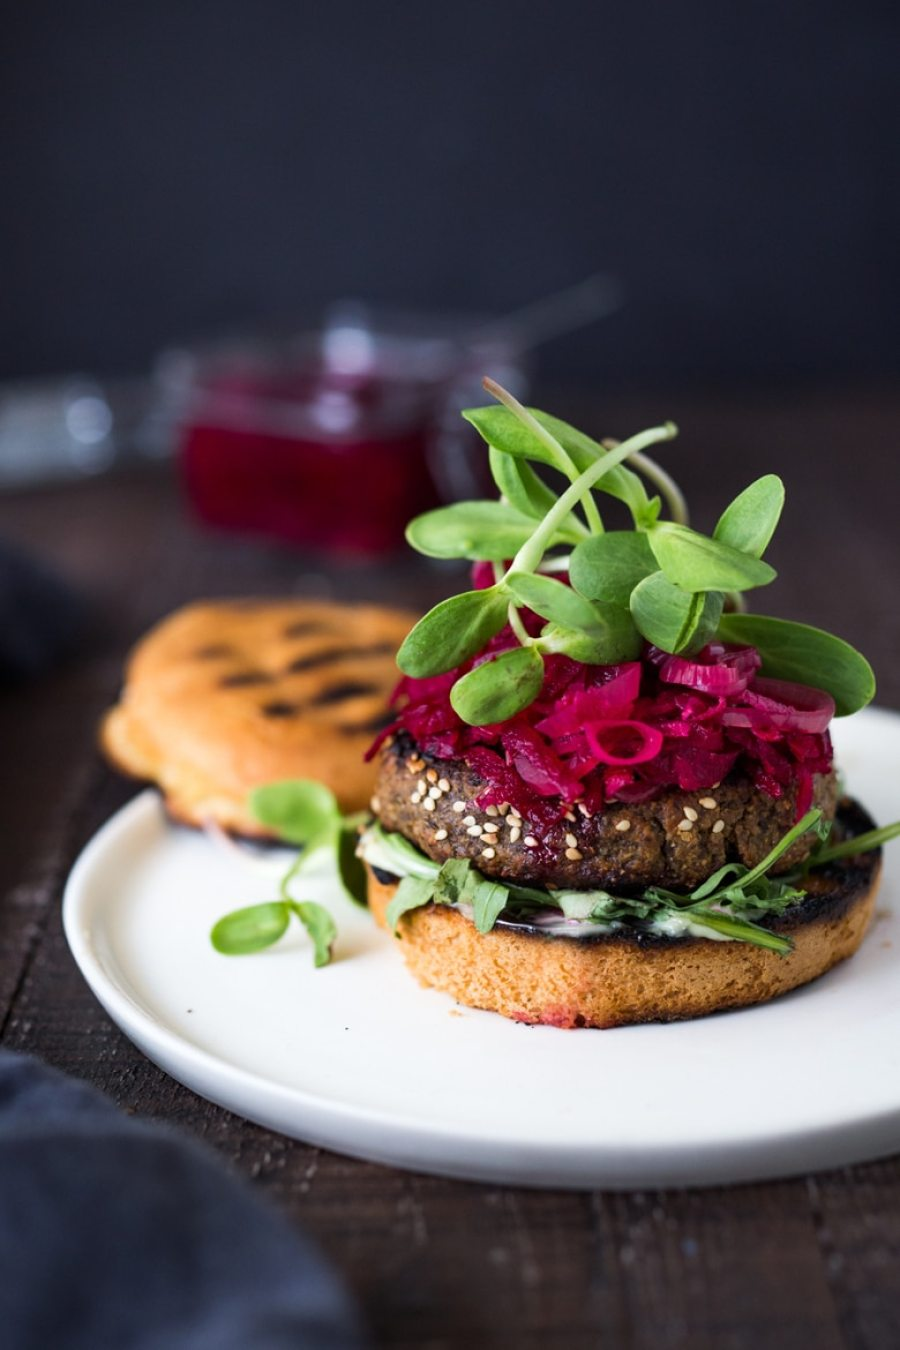 Sprouted Lentil Burgers- grillable, vegan and gluten-free adaptable. Super healthy and delicious, packed with living nutrients! Topped with quick picked beets. | www.feastingathome.com